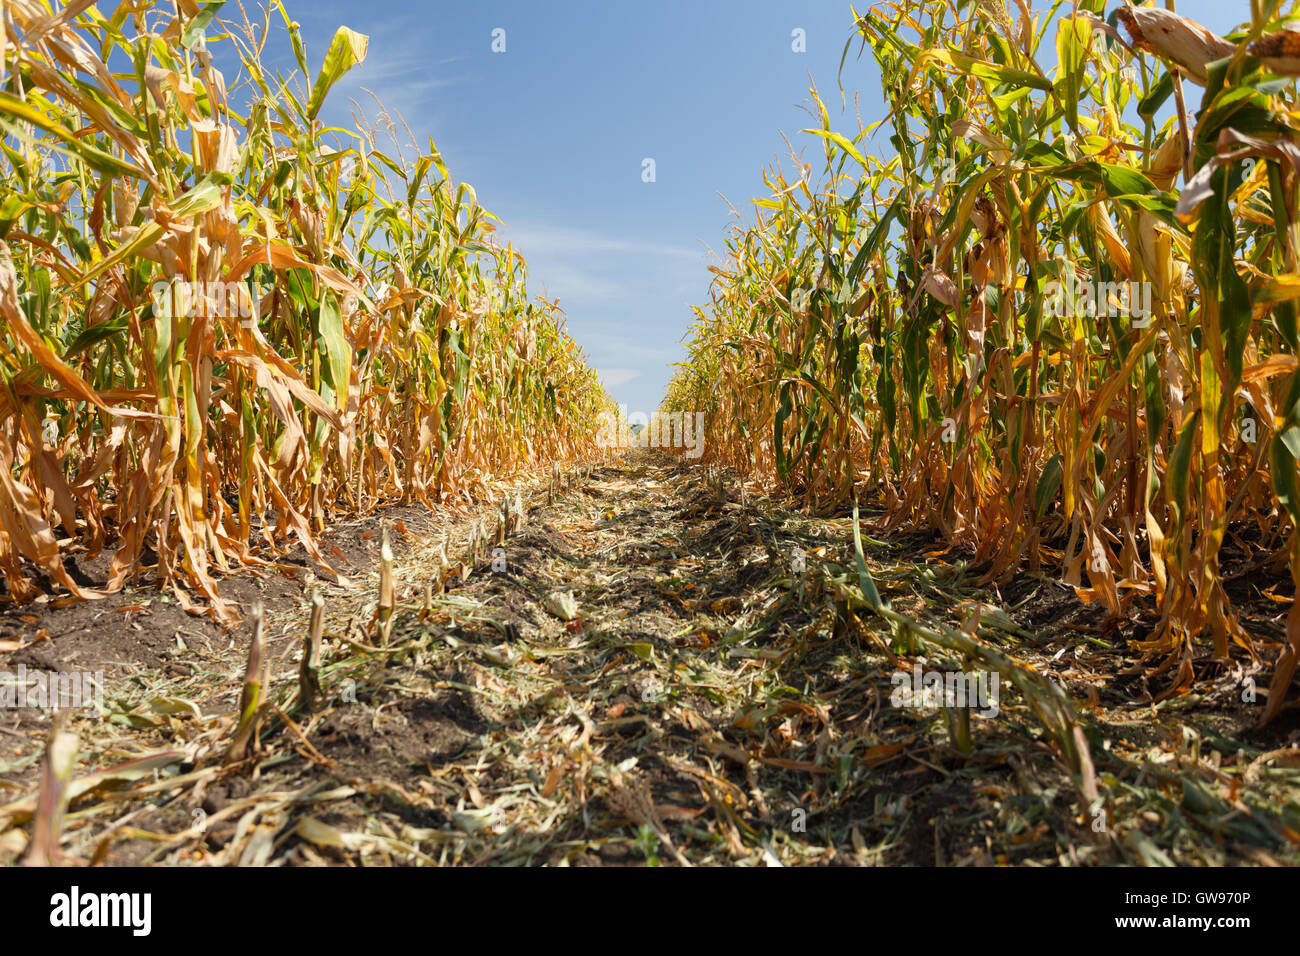 Maize Tunnel Stock Photos & Maize Tunnel Stock Images - Alamy